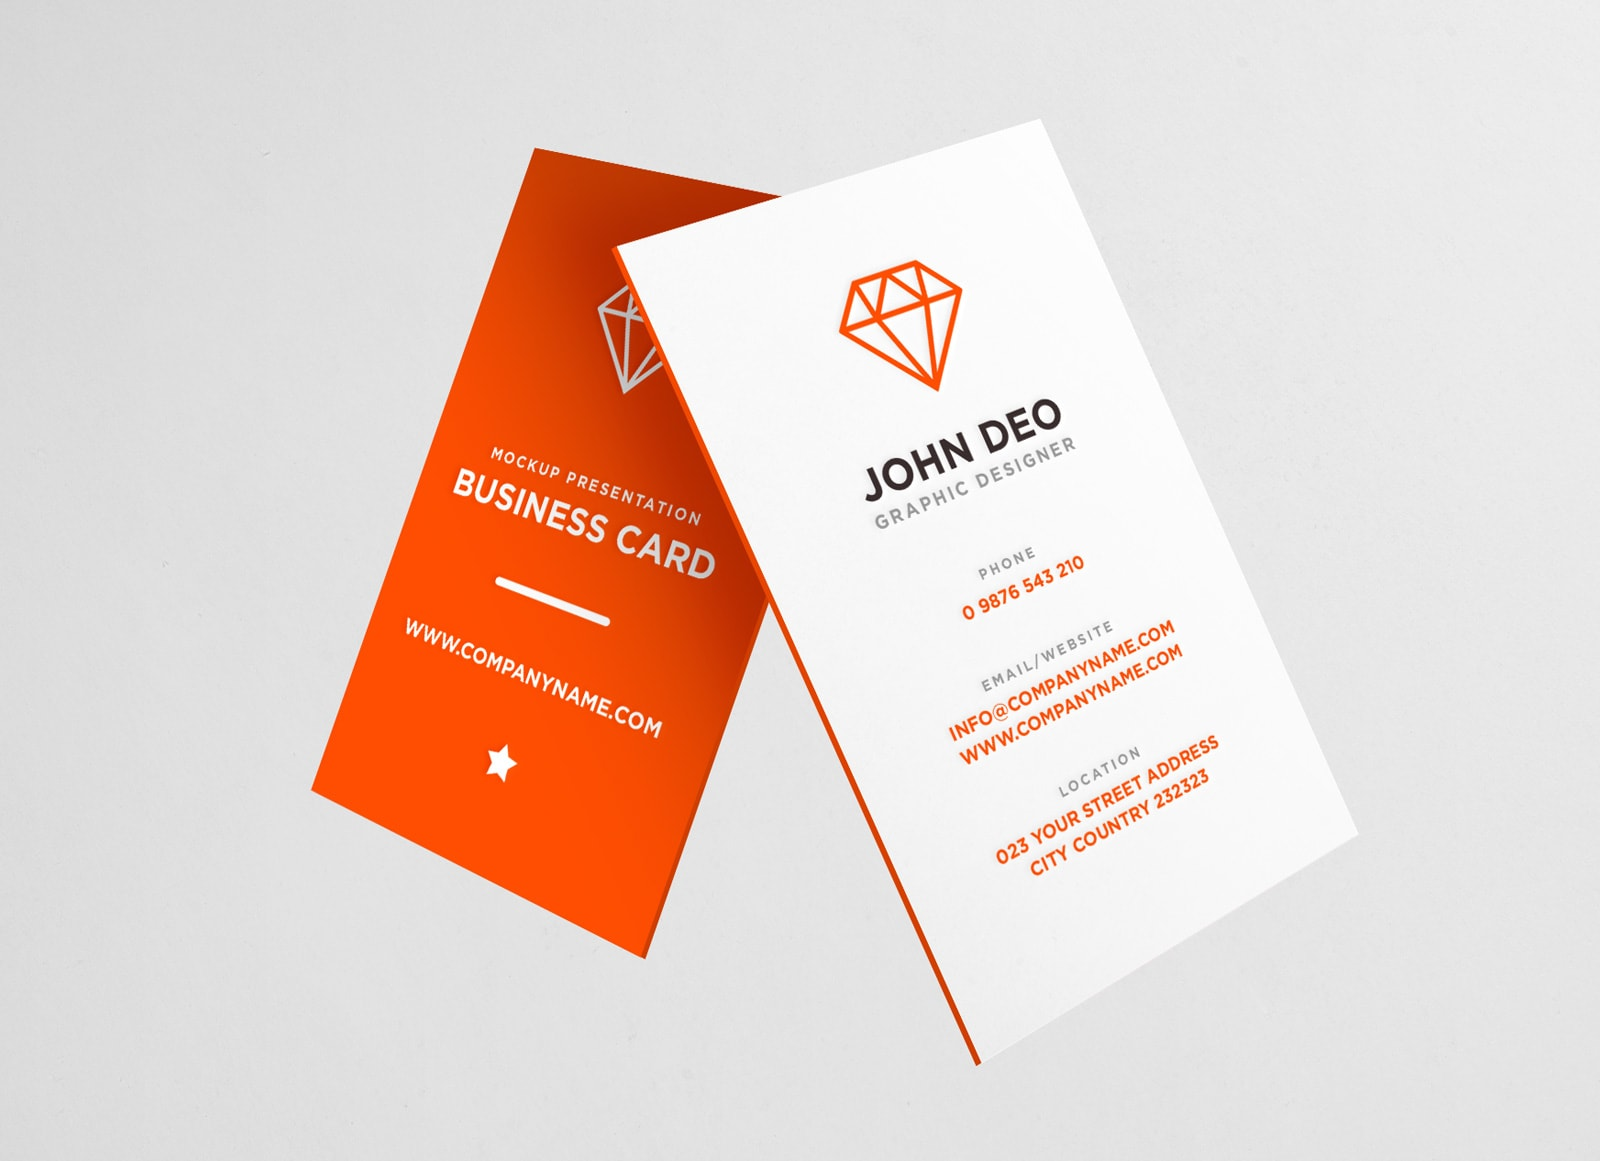 free vertical business card mockup psd - Business Card Mockup Psd